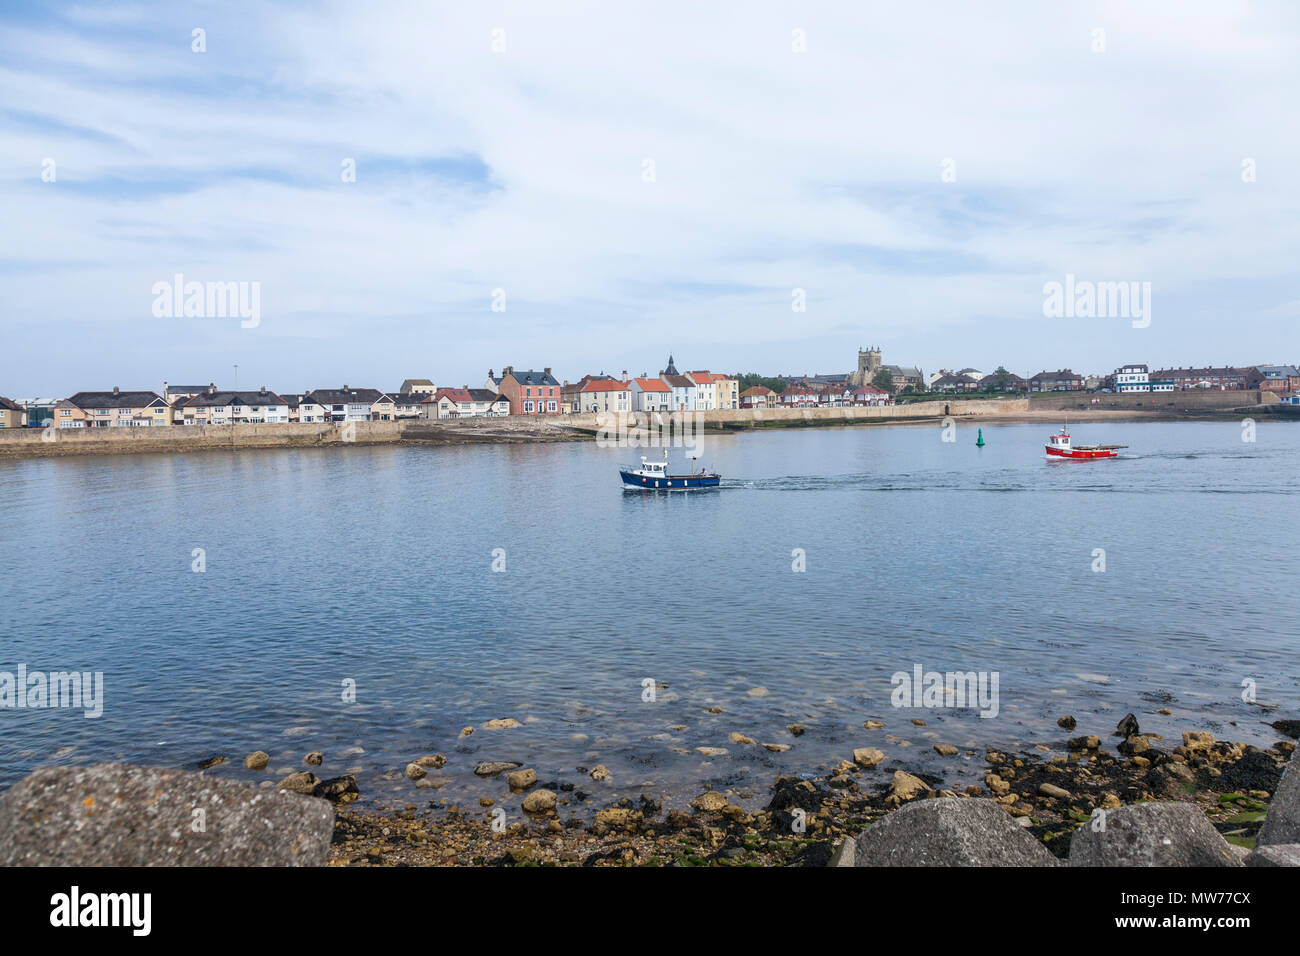 Two boats enter the harbour area at the Headland at Old Hartlepool,England,UK - Stock Image